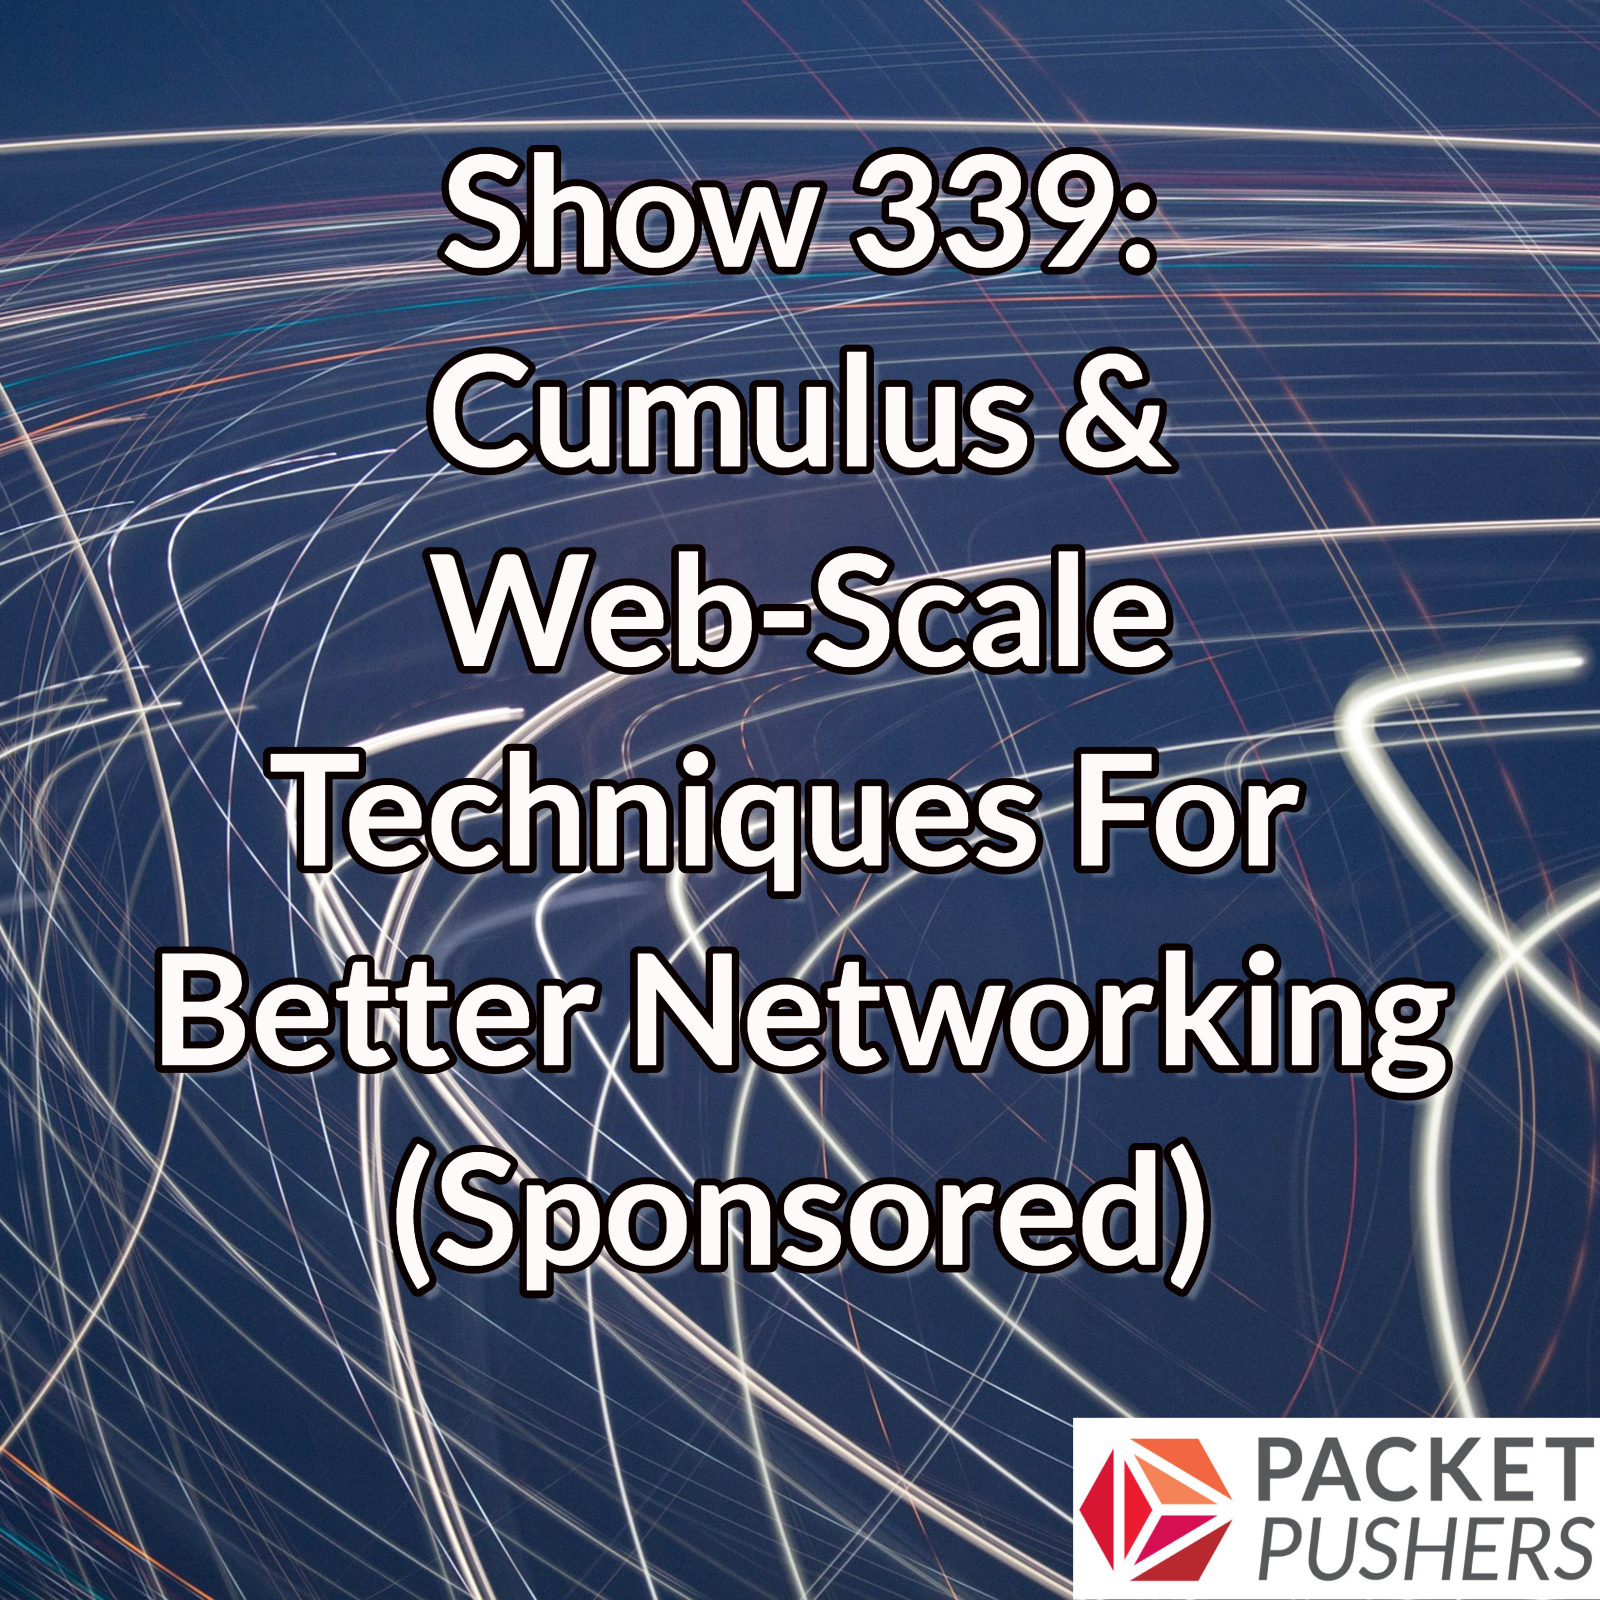 Show 339: Cumulus & Web-Scale Techniques For Better Networking